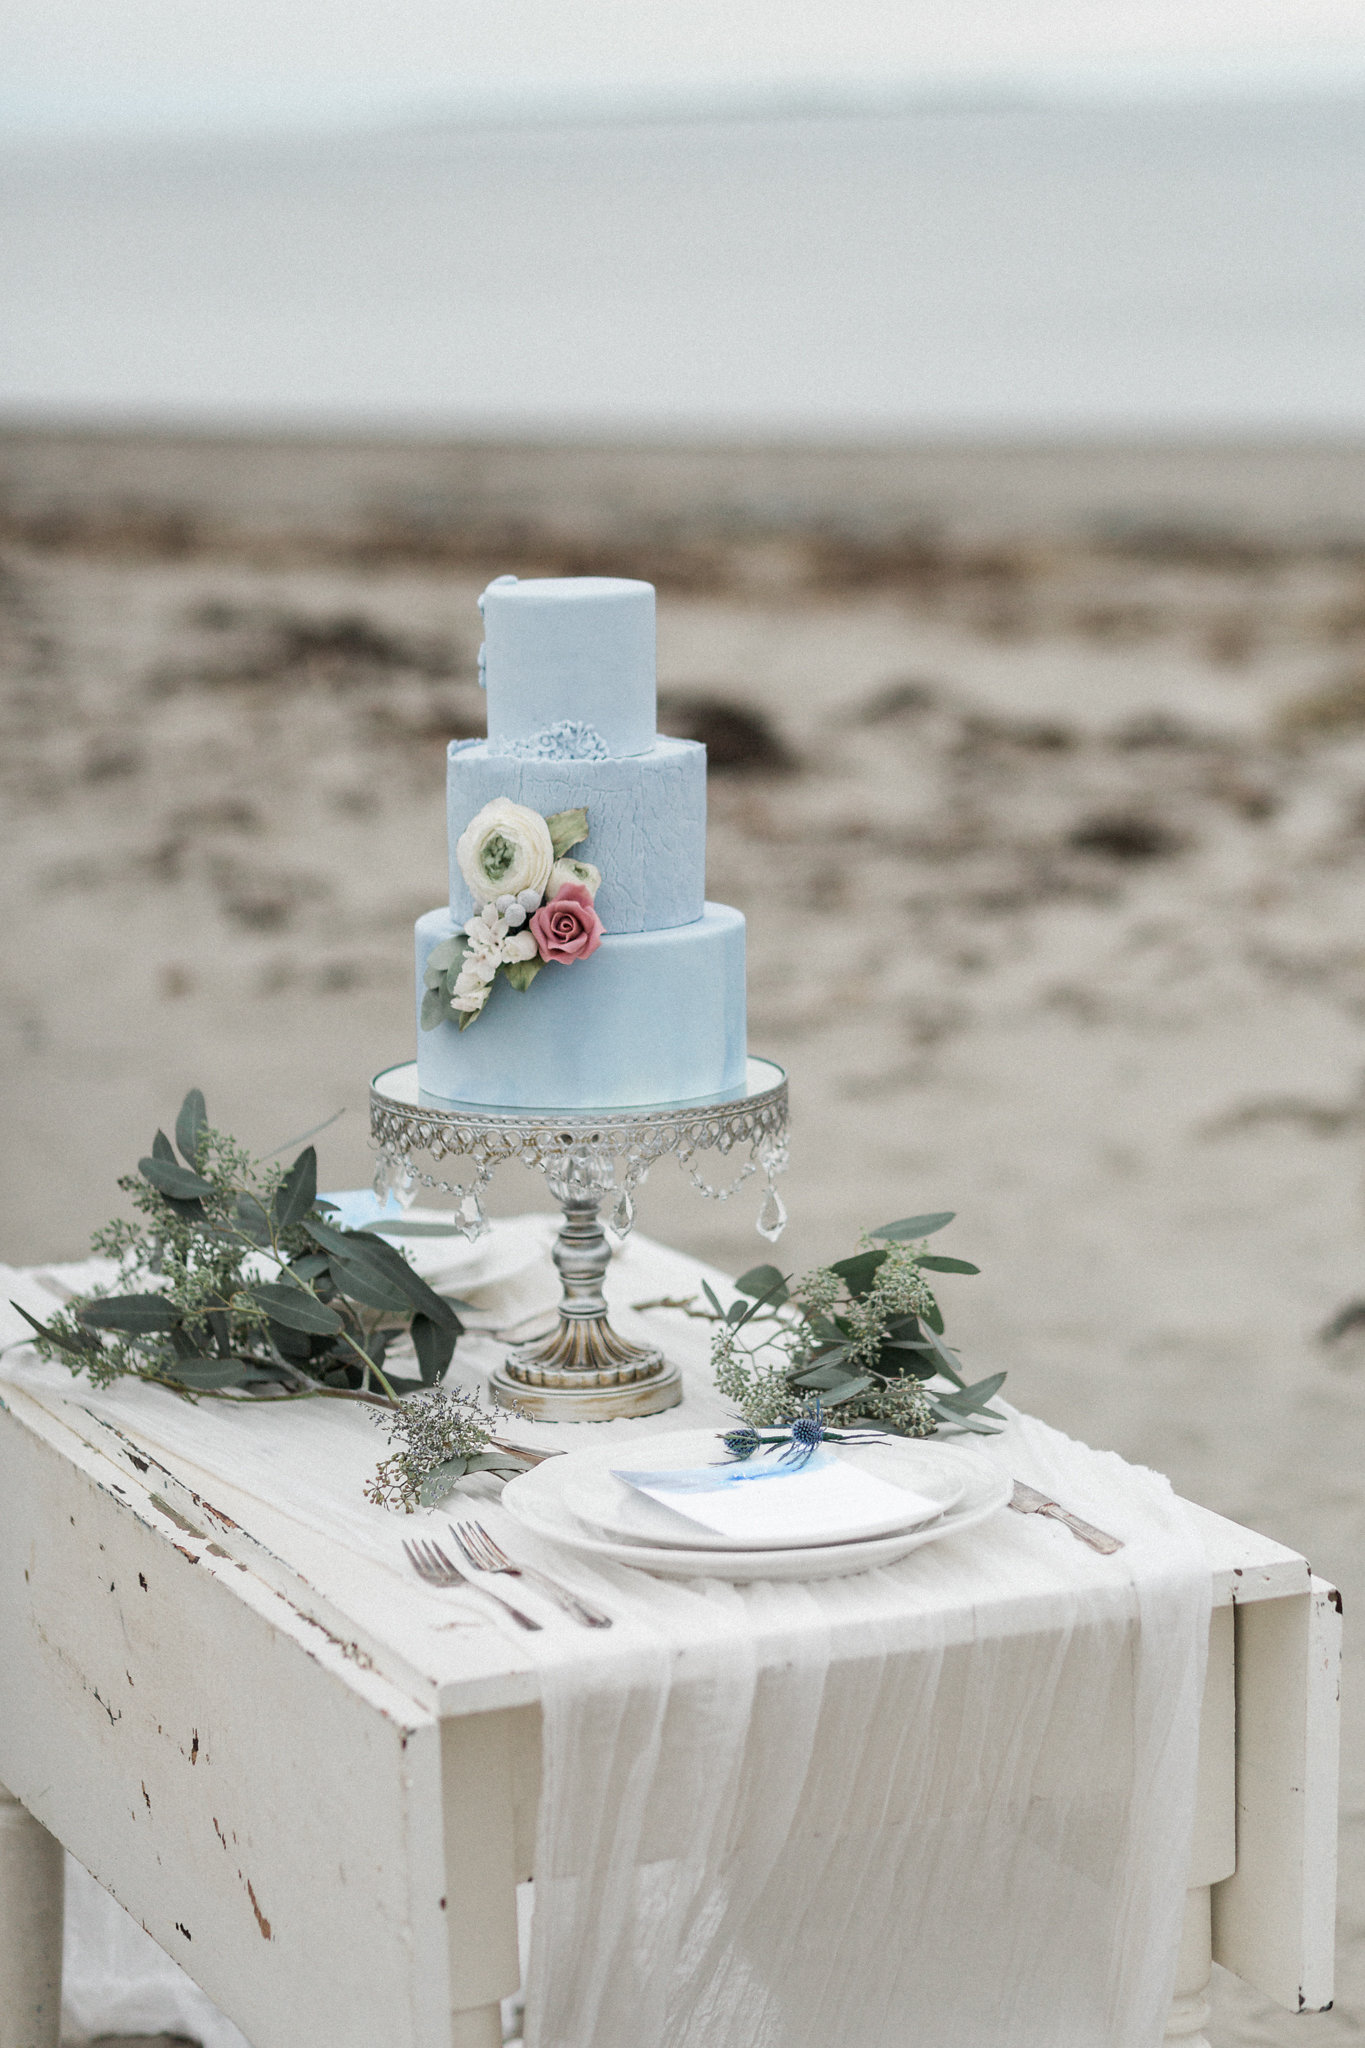 Baby blue wedding cake with sugar flowers